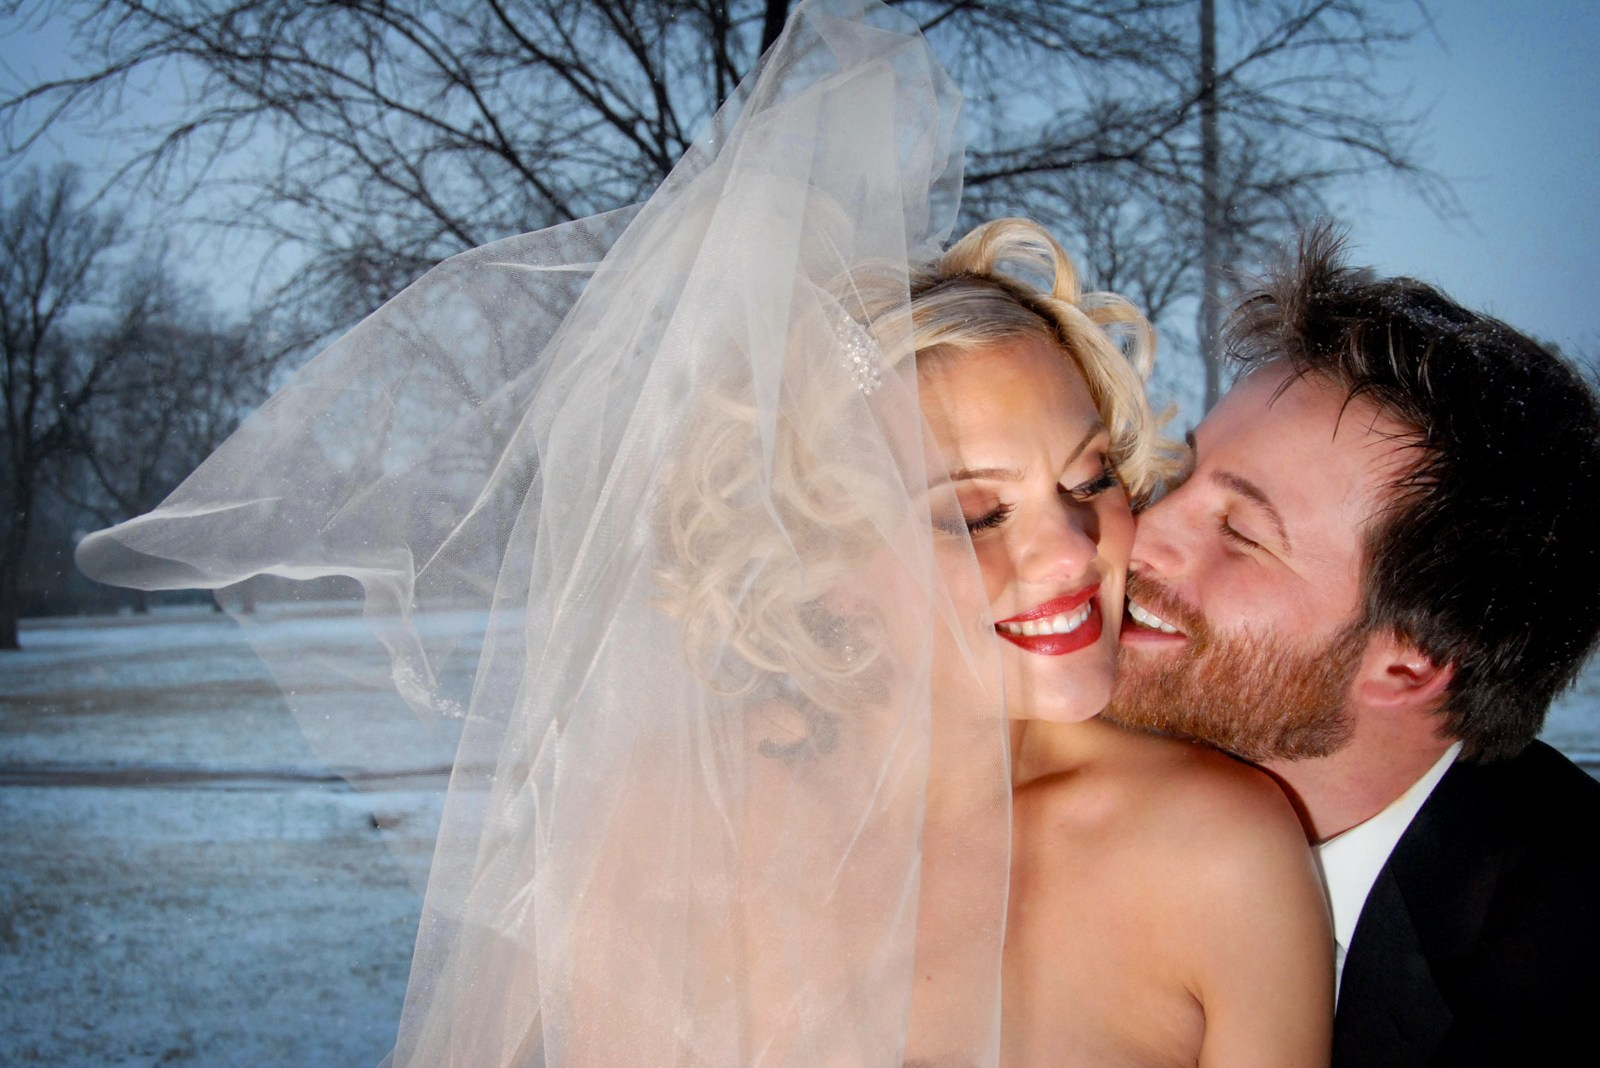 Bride's veil blowing in the winter with snow on the ground and groom cuddling with bride